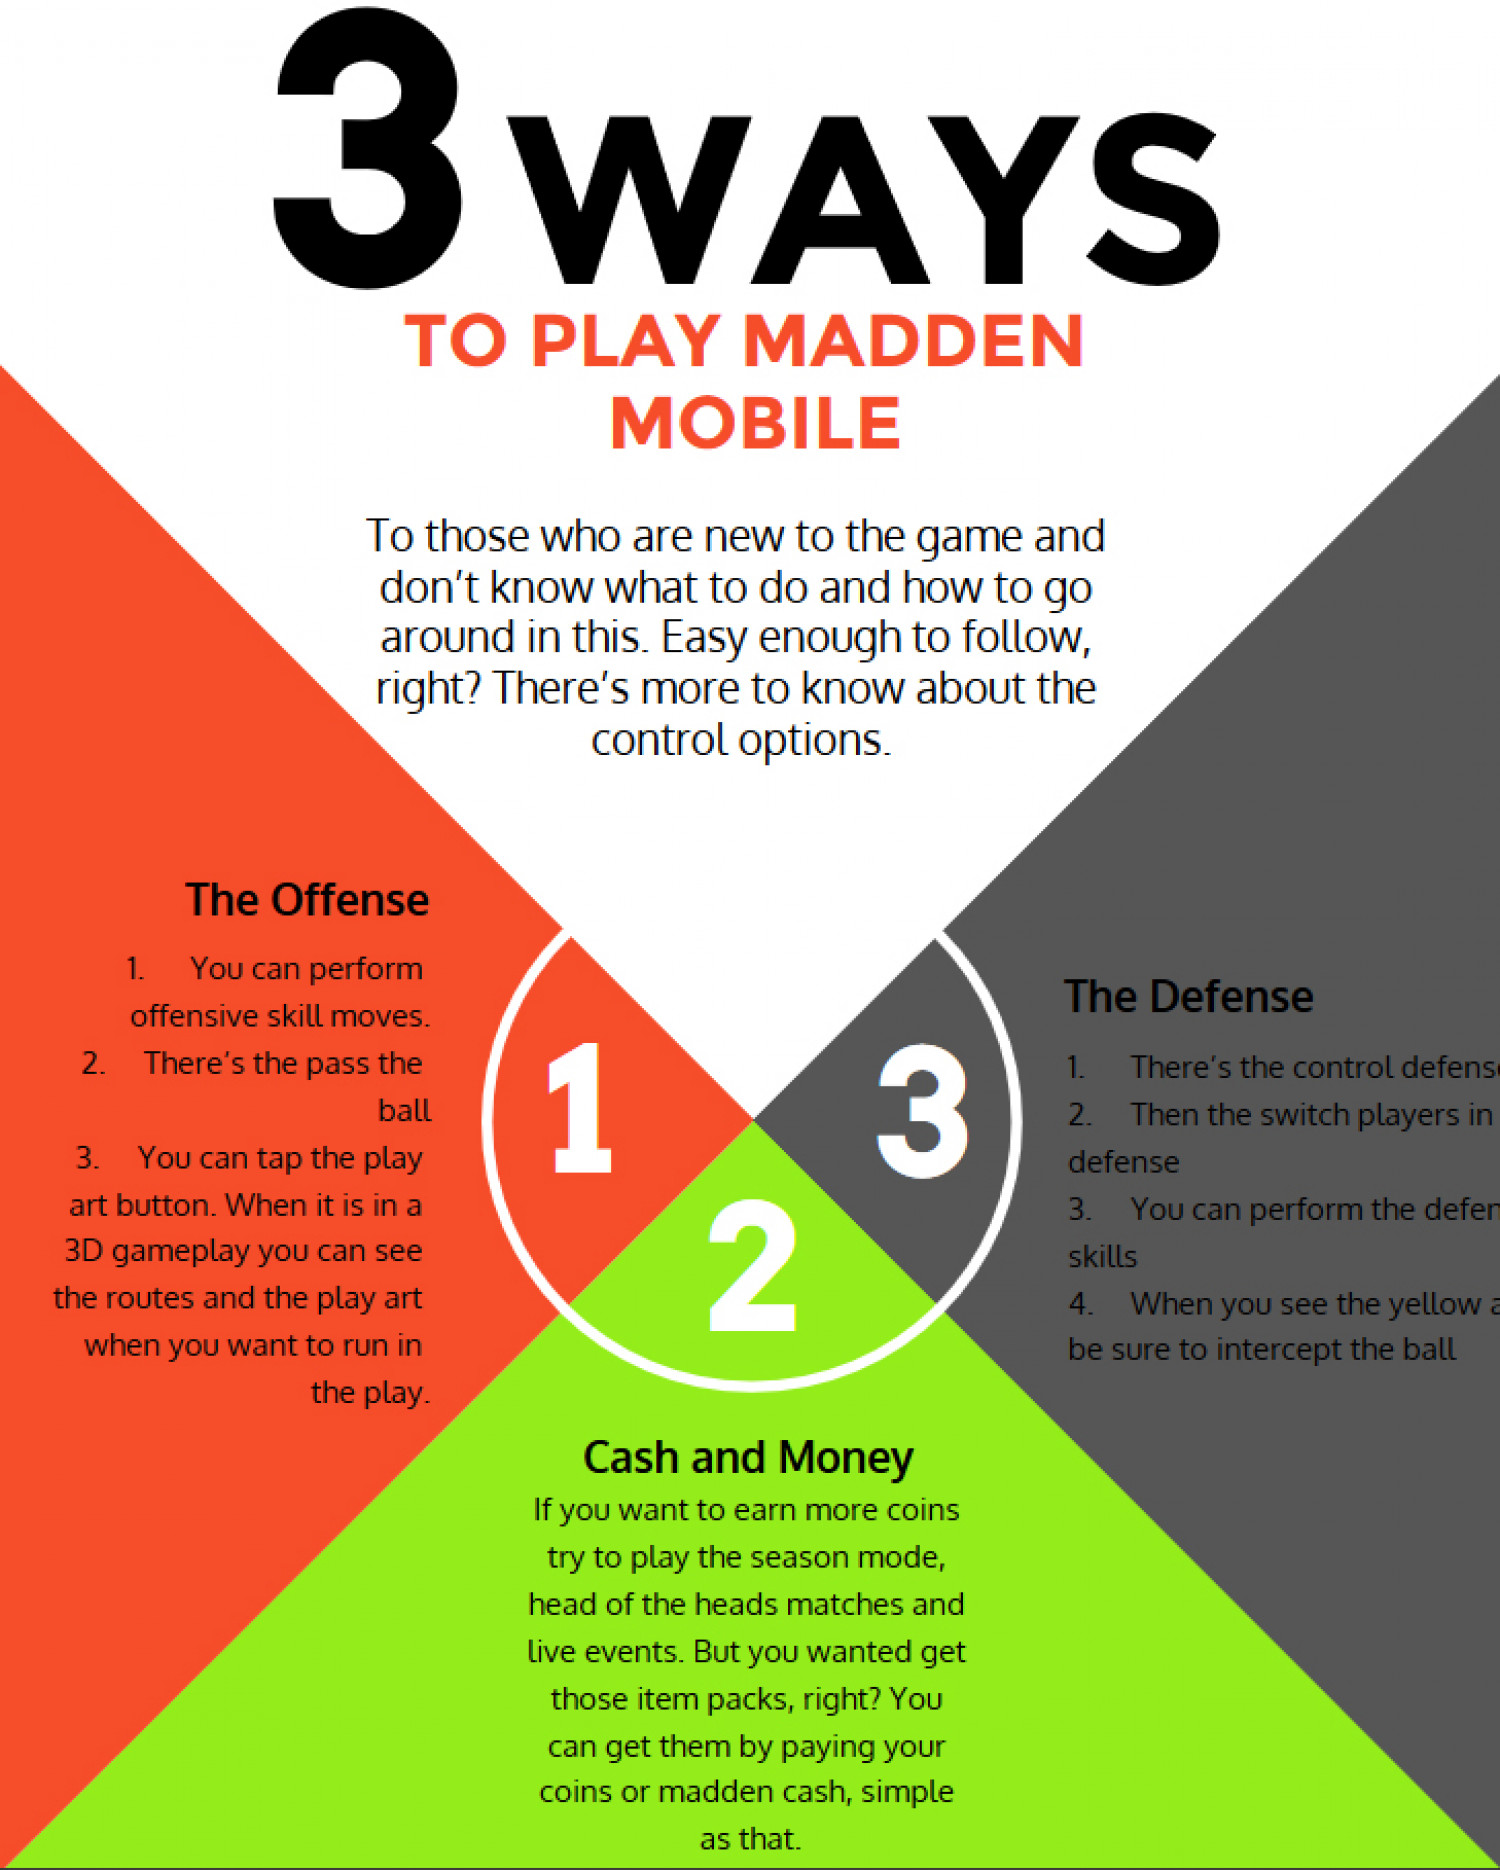 Do You Know How To Play The Madden Mobile Game? Infographic